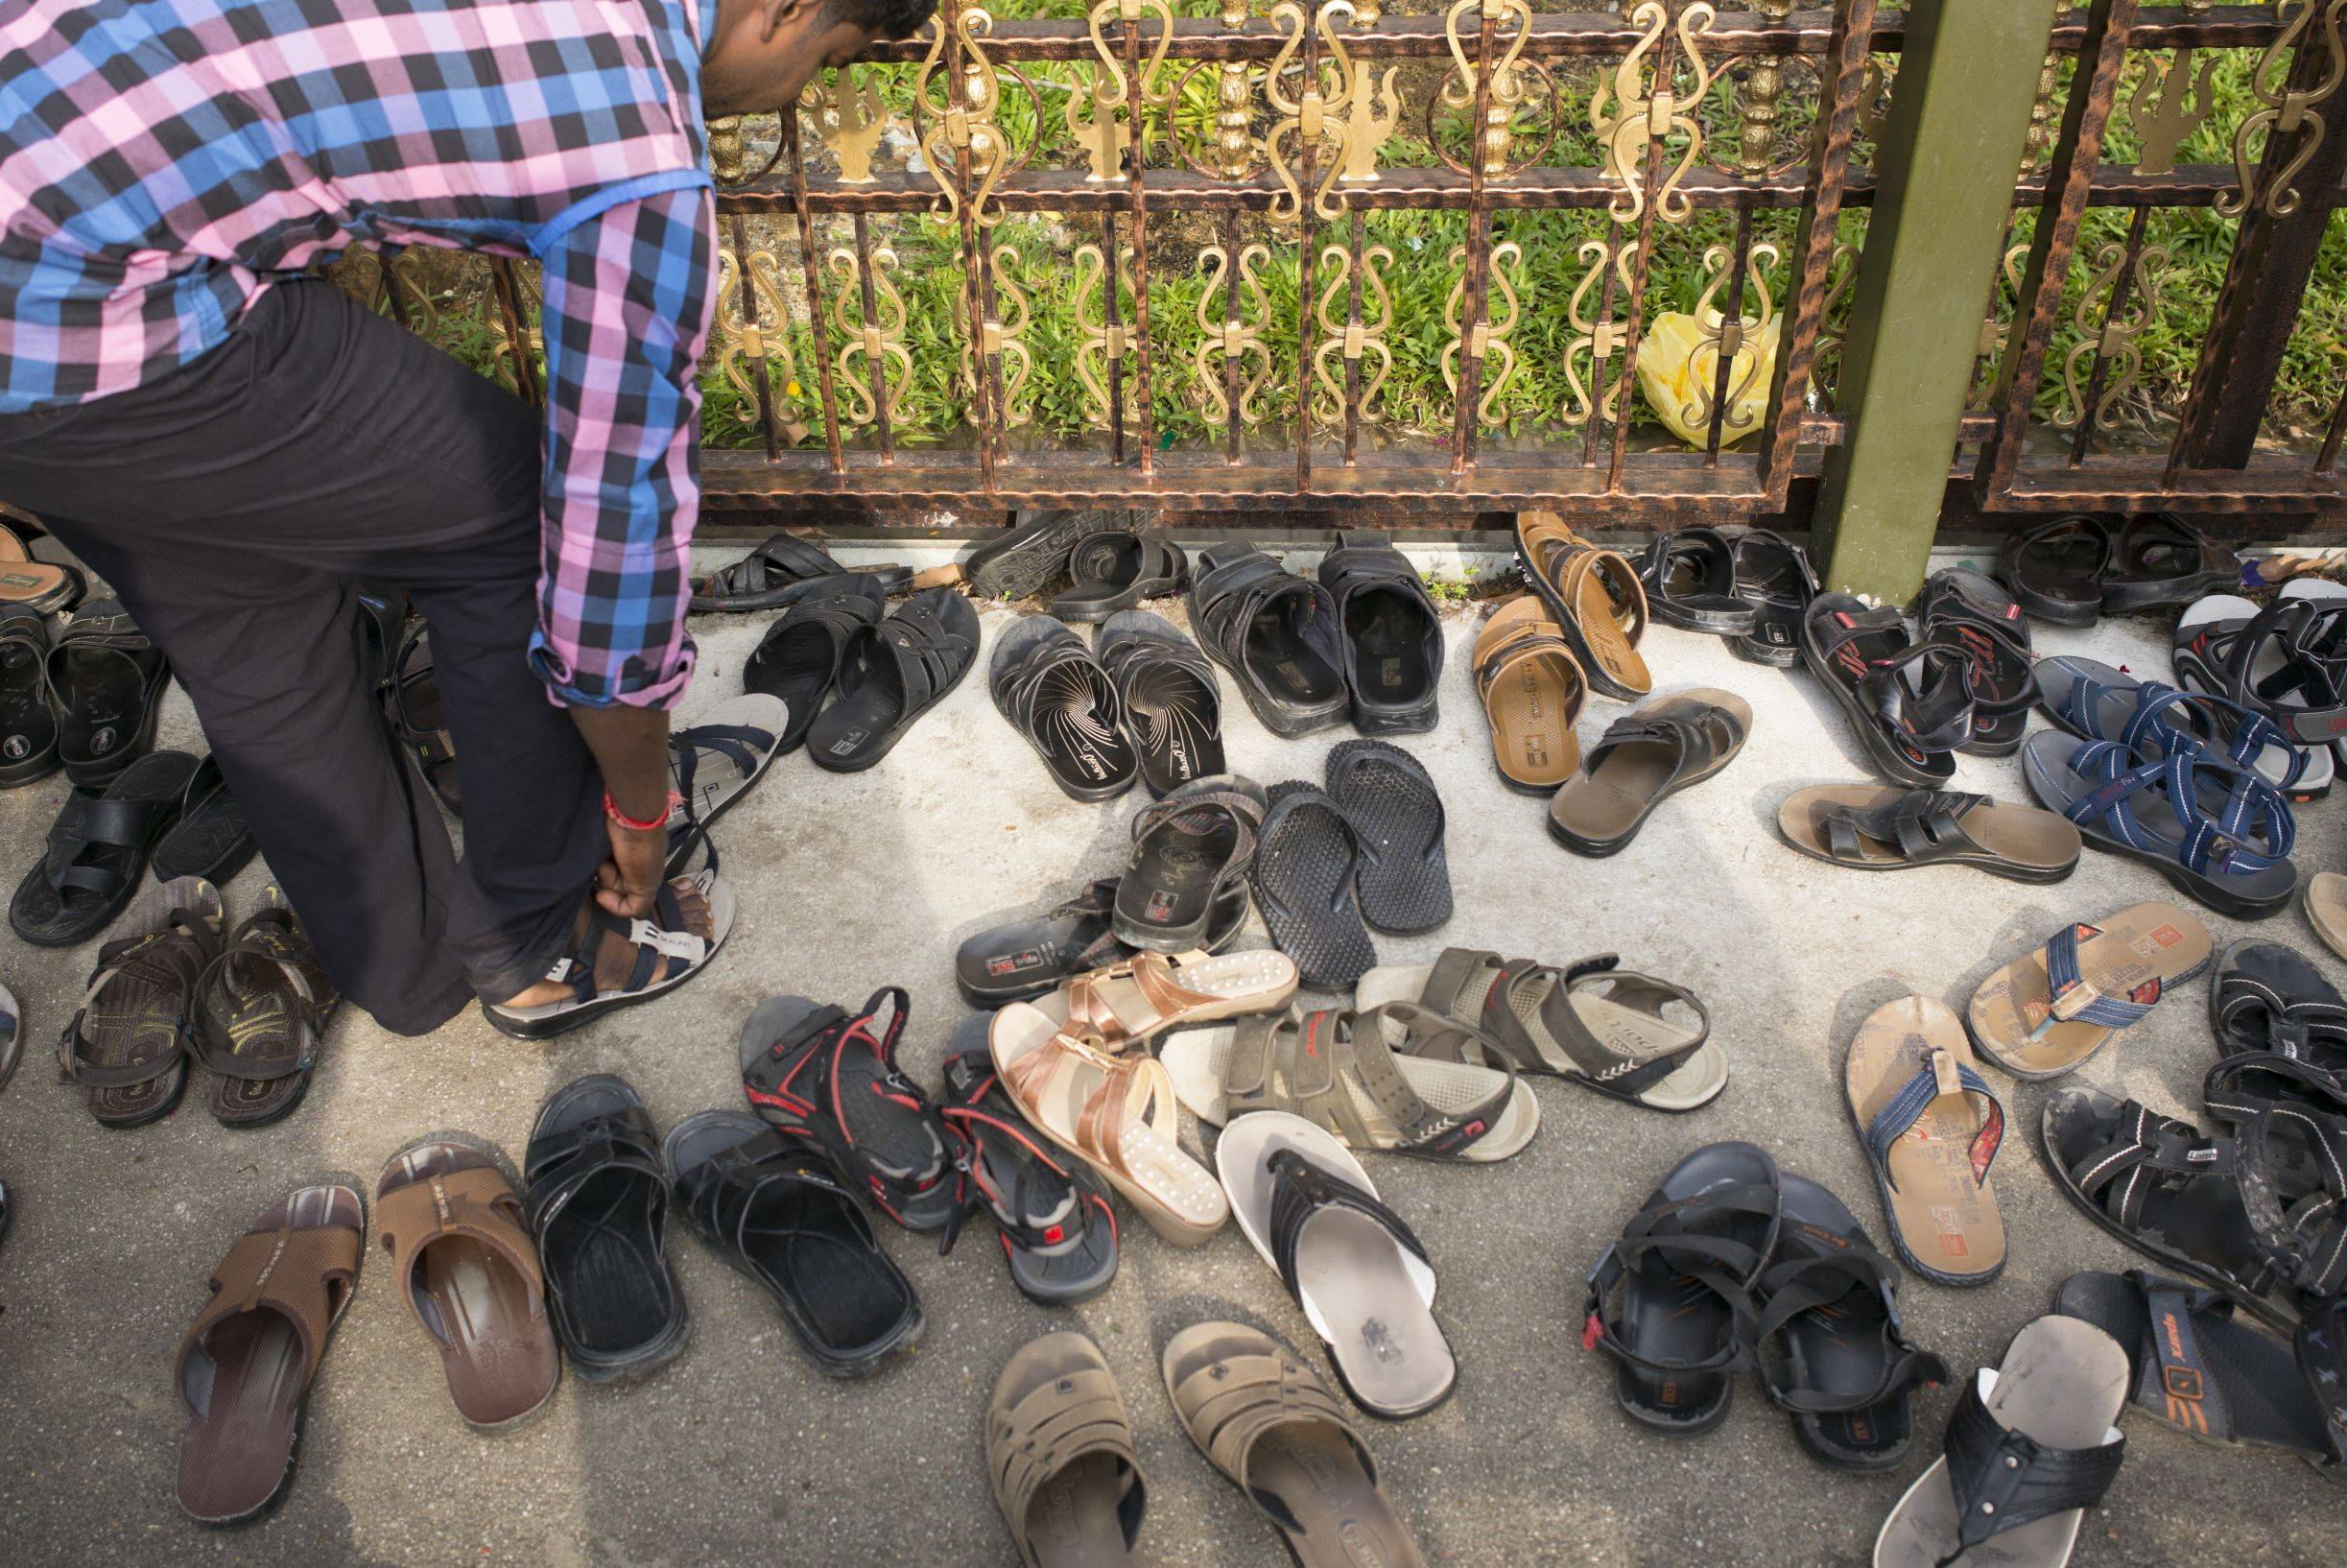 take off your shoes in india